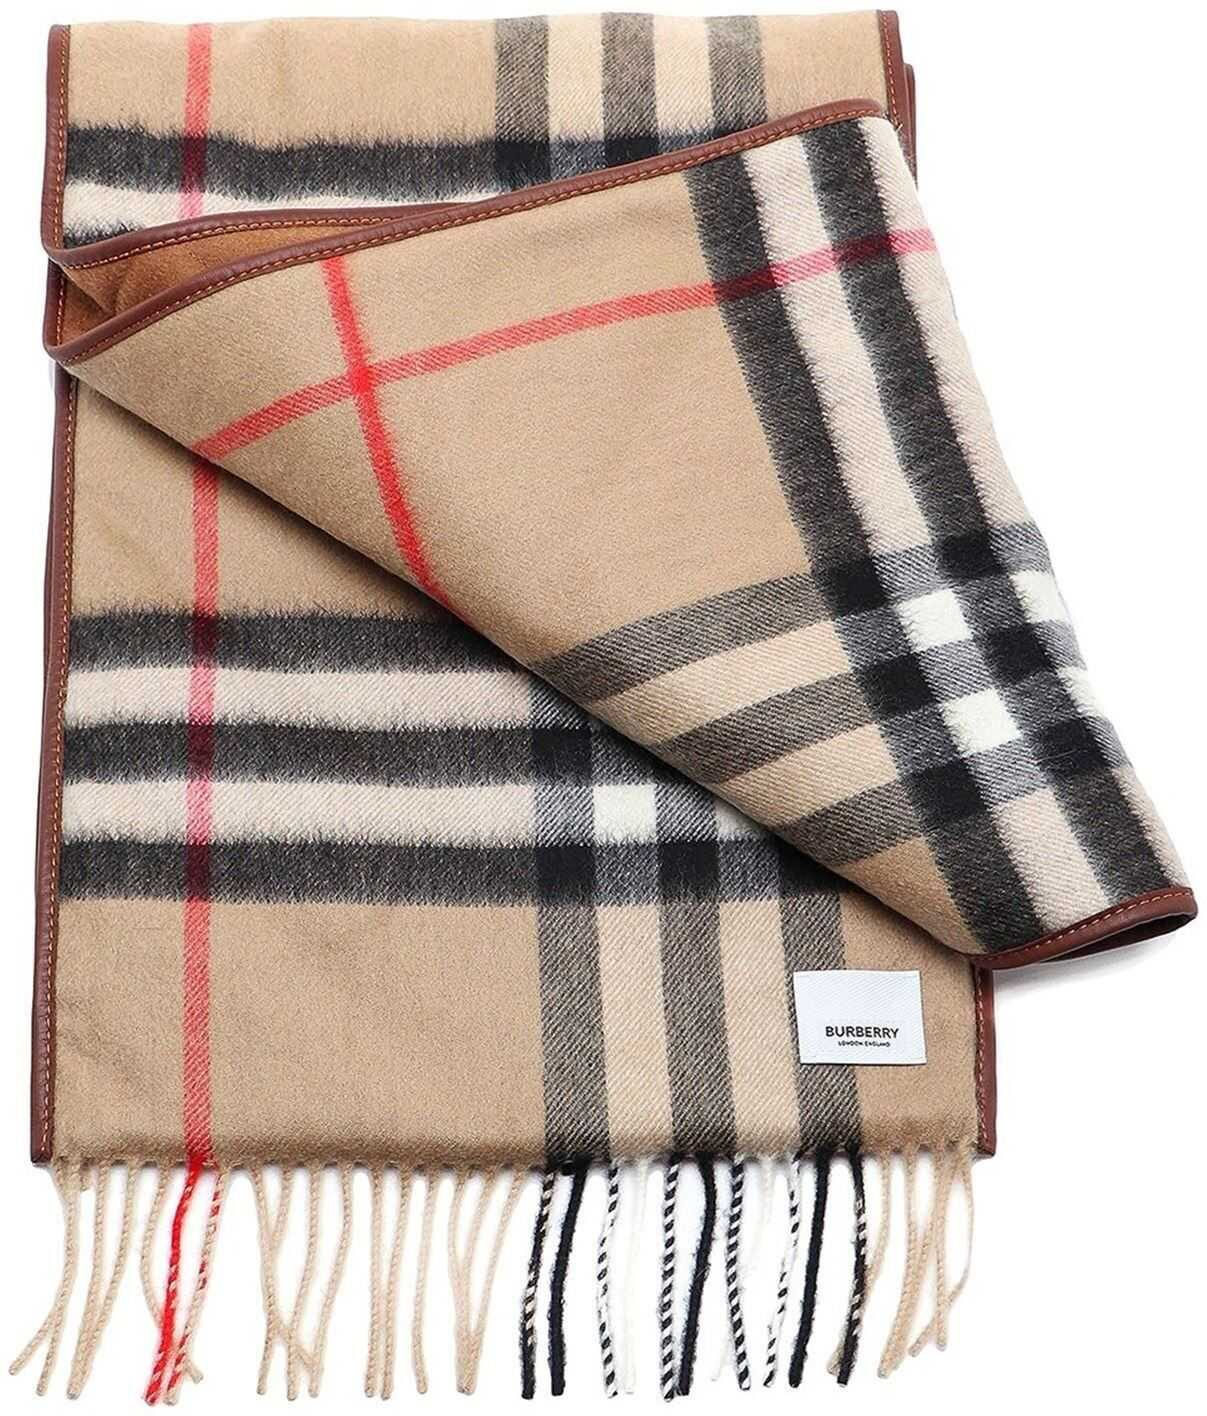 Burberry Vintage Check Leather Trimmed Scarf Beige